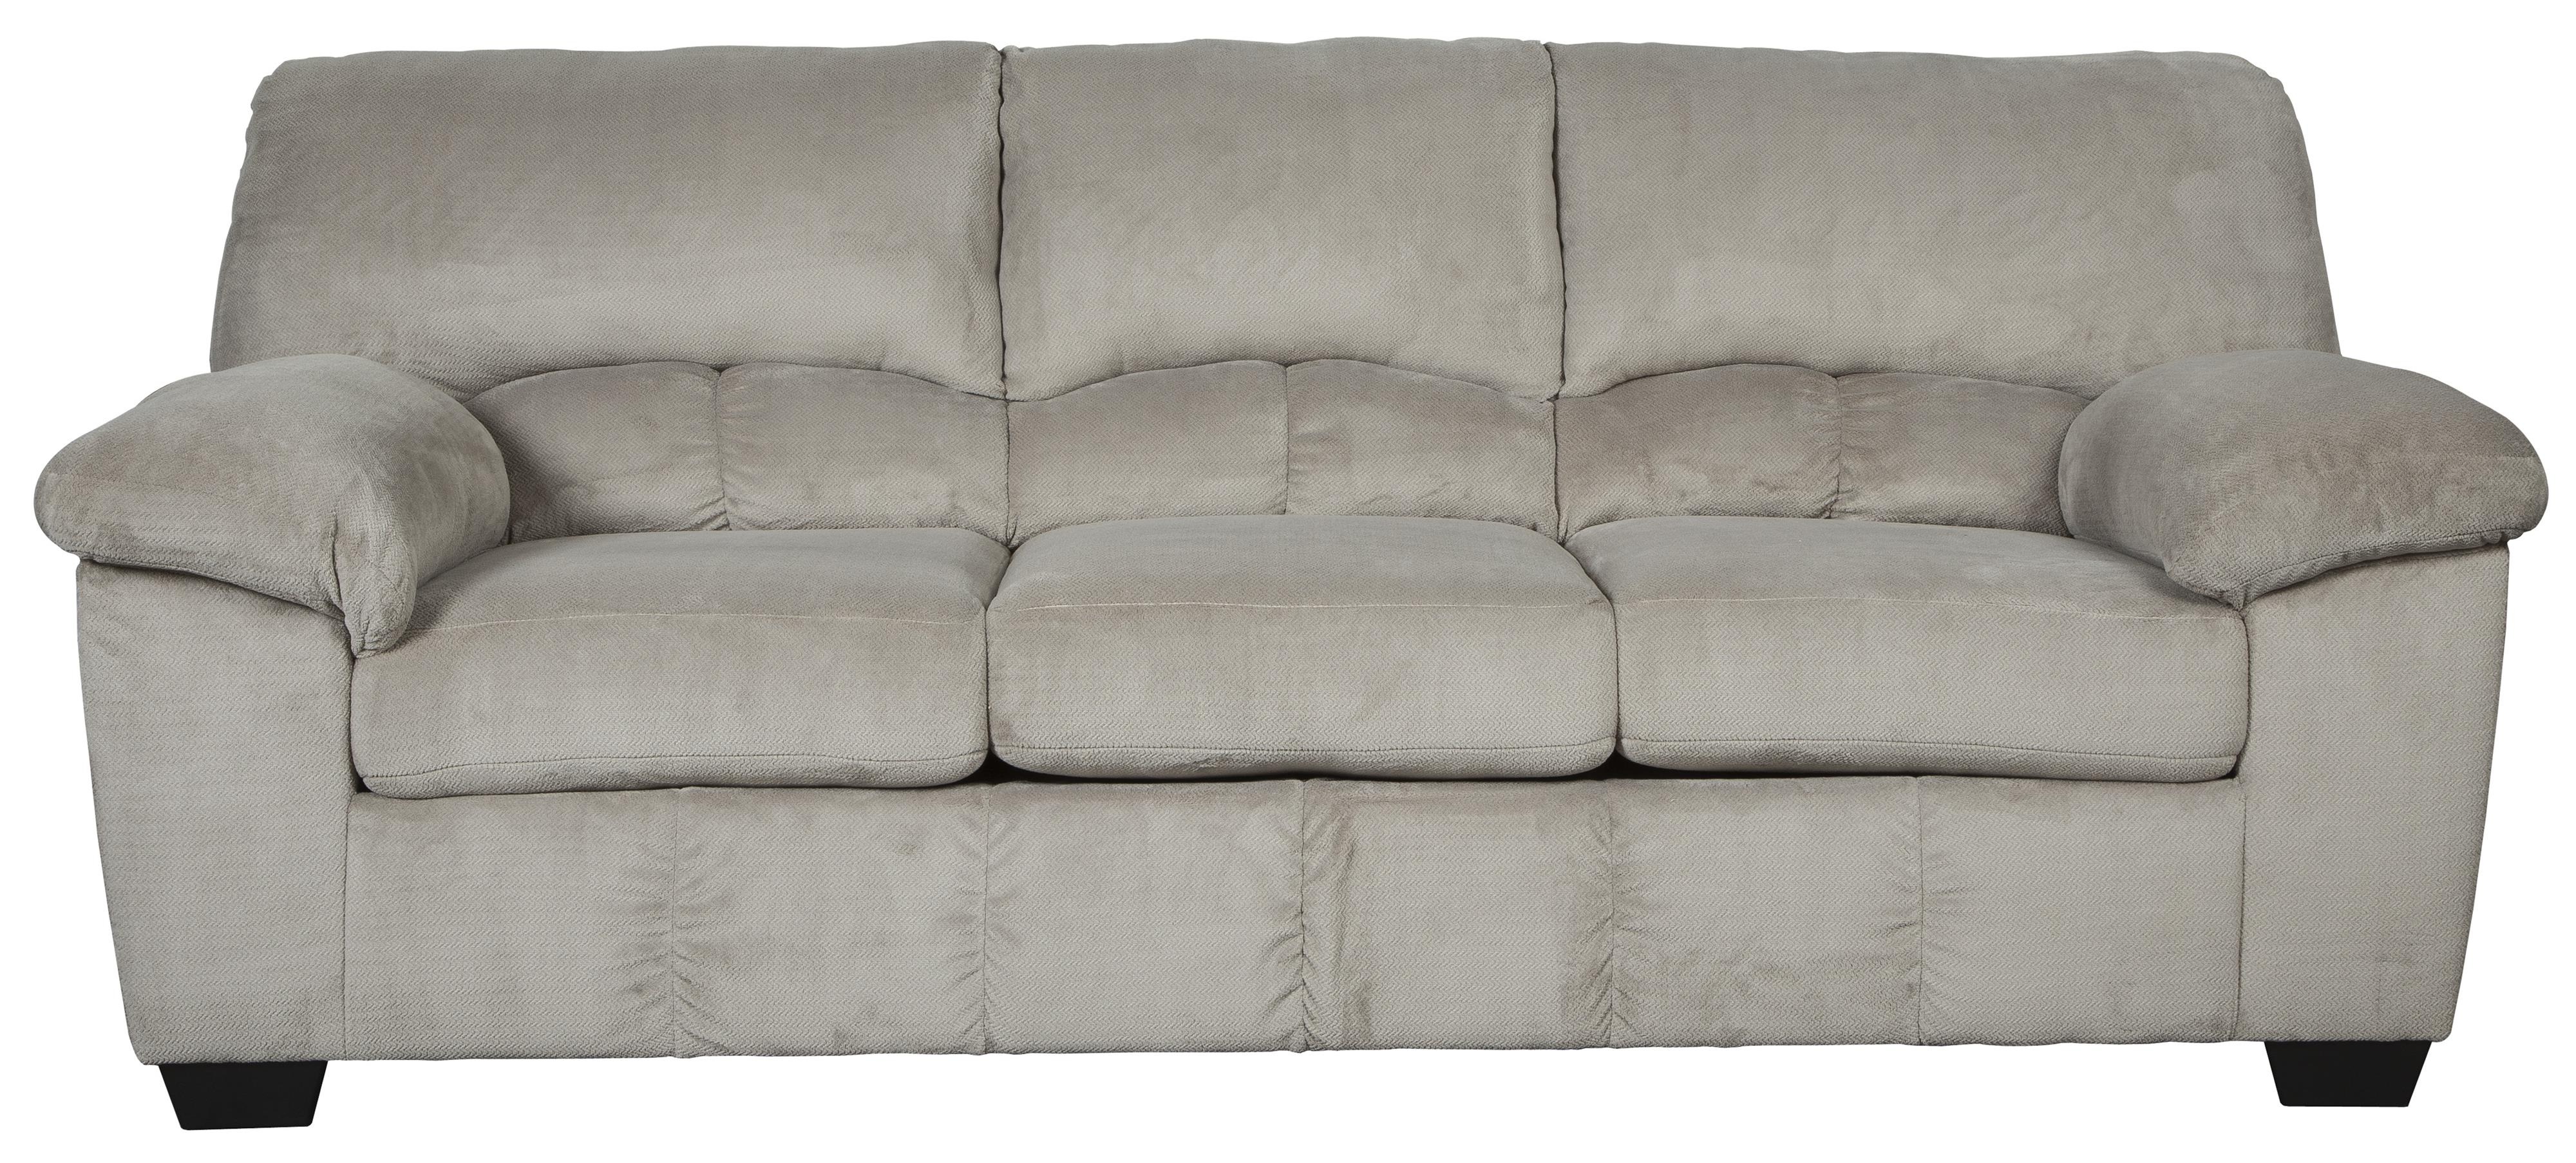 Signature Design by Ashley Dailey Sofa - Item Number: 9540138